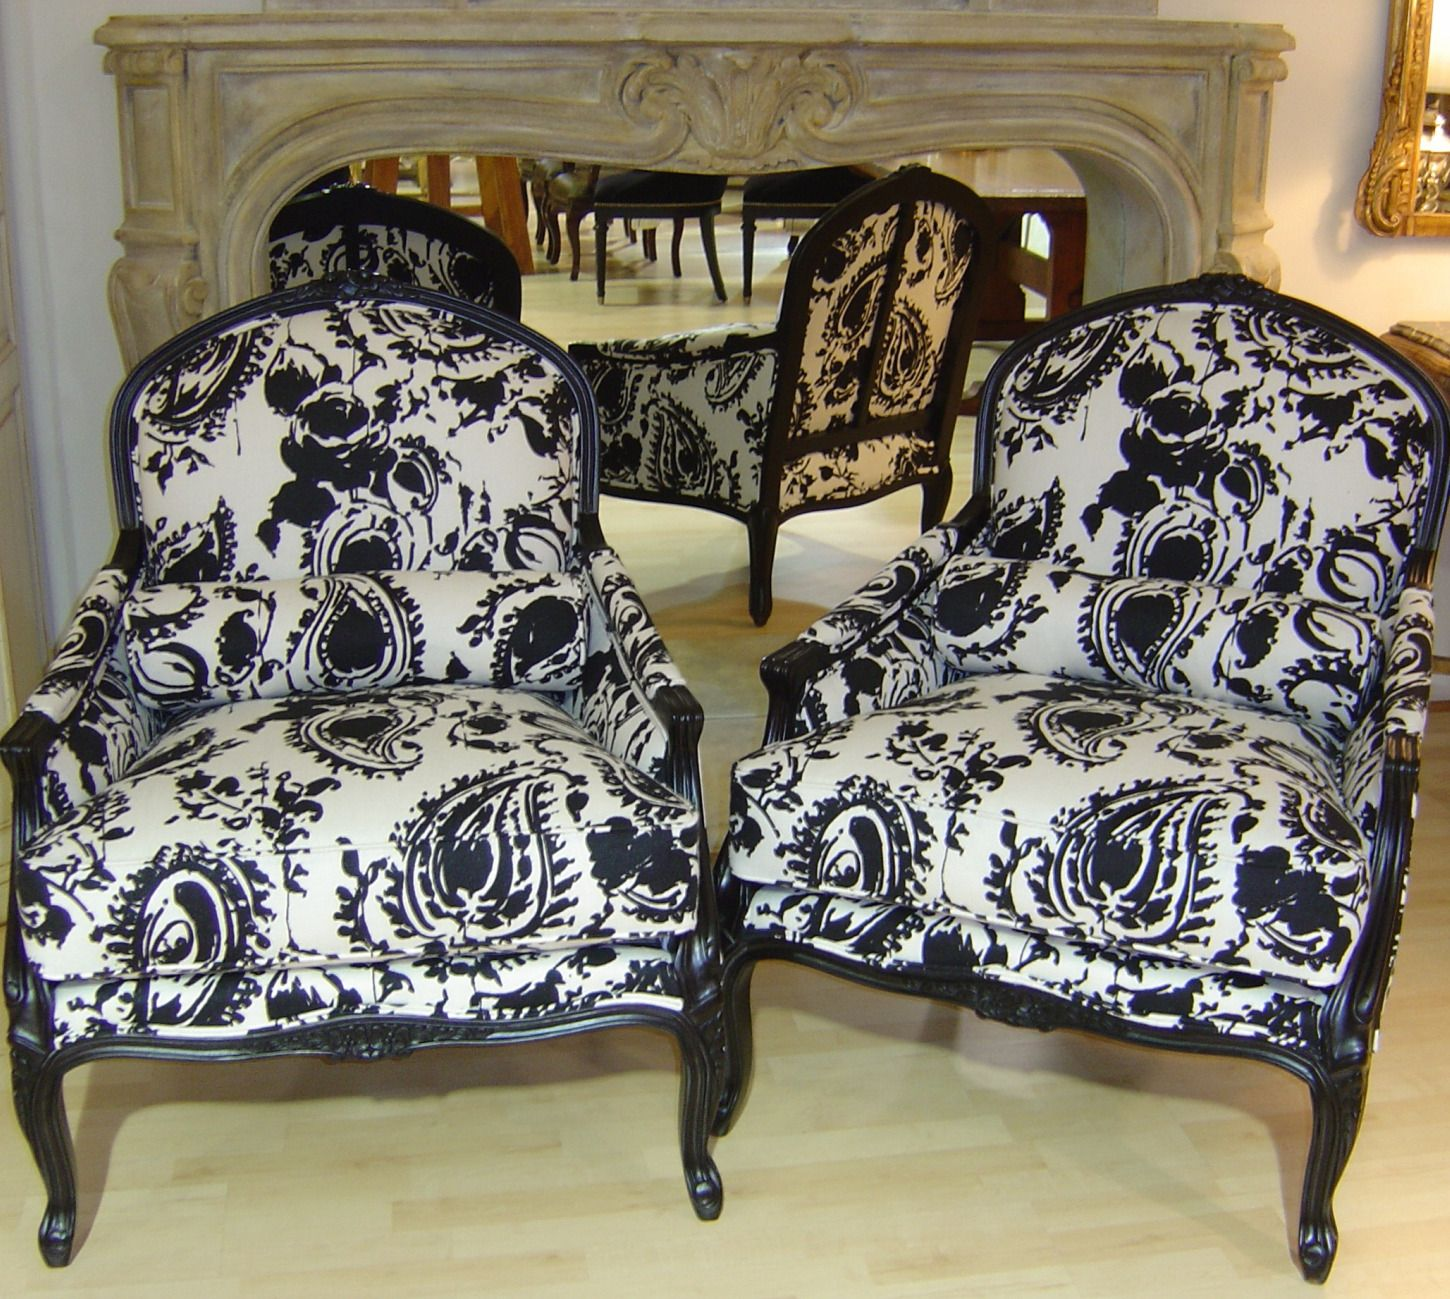 Exceptional LOVE These Ralph Lauren Chairs In His Fabulous Annelise Paisley.Black And  White